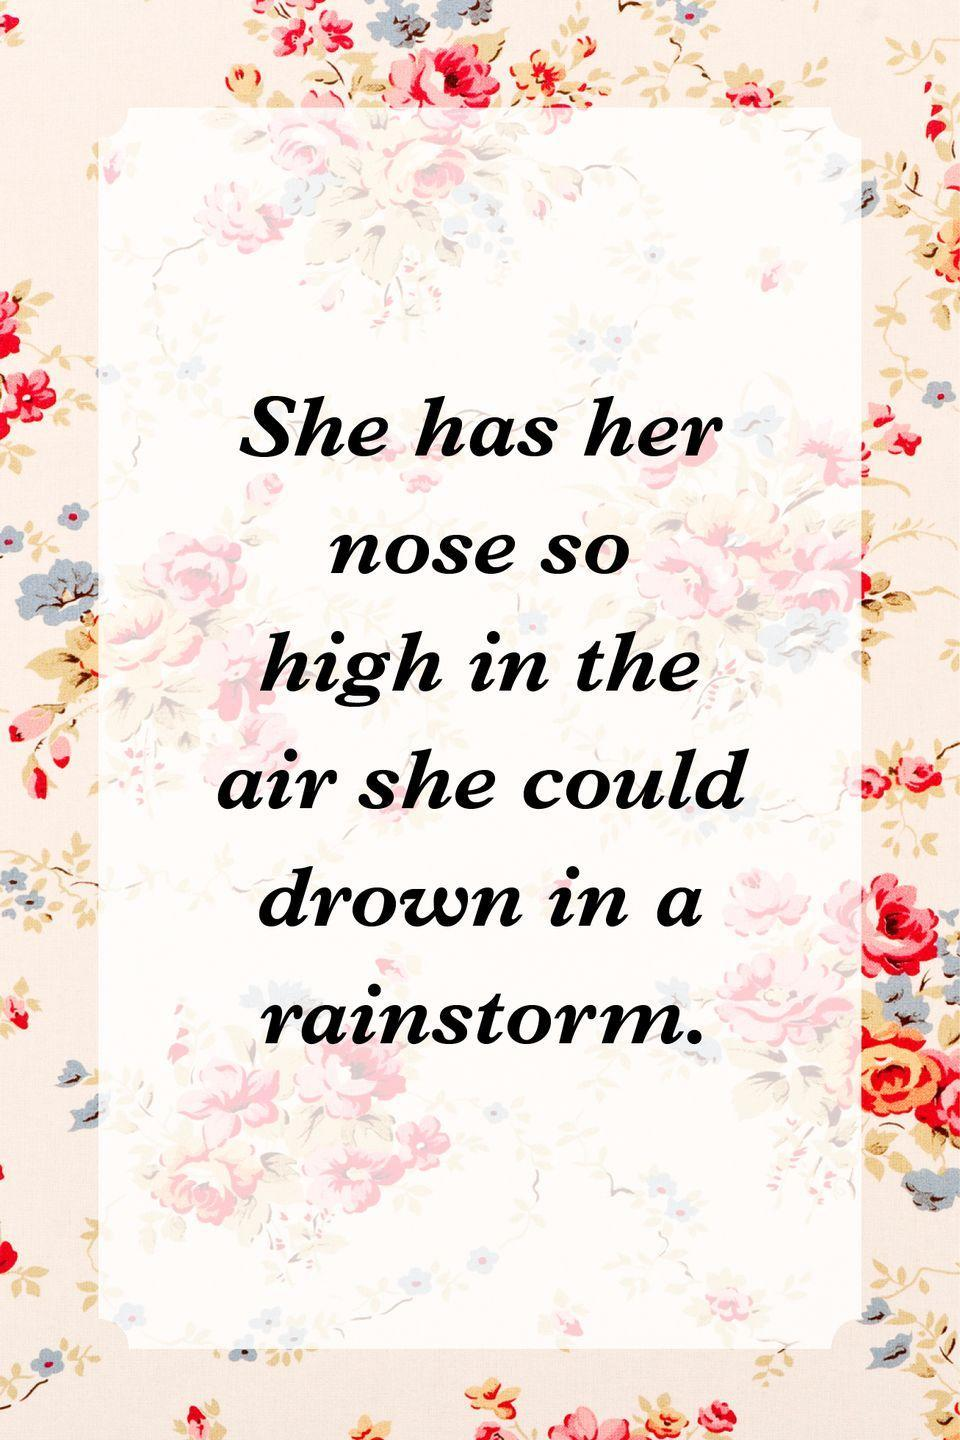 """<p>""""She has her nose so high in the air she could drown in a rainstorm.""""</p>"""